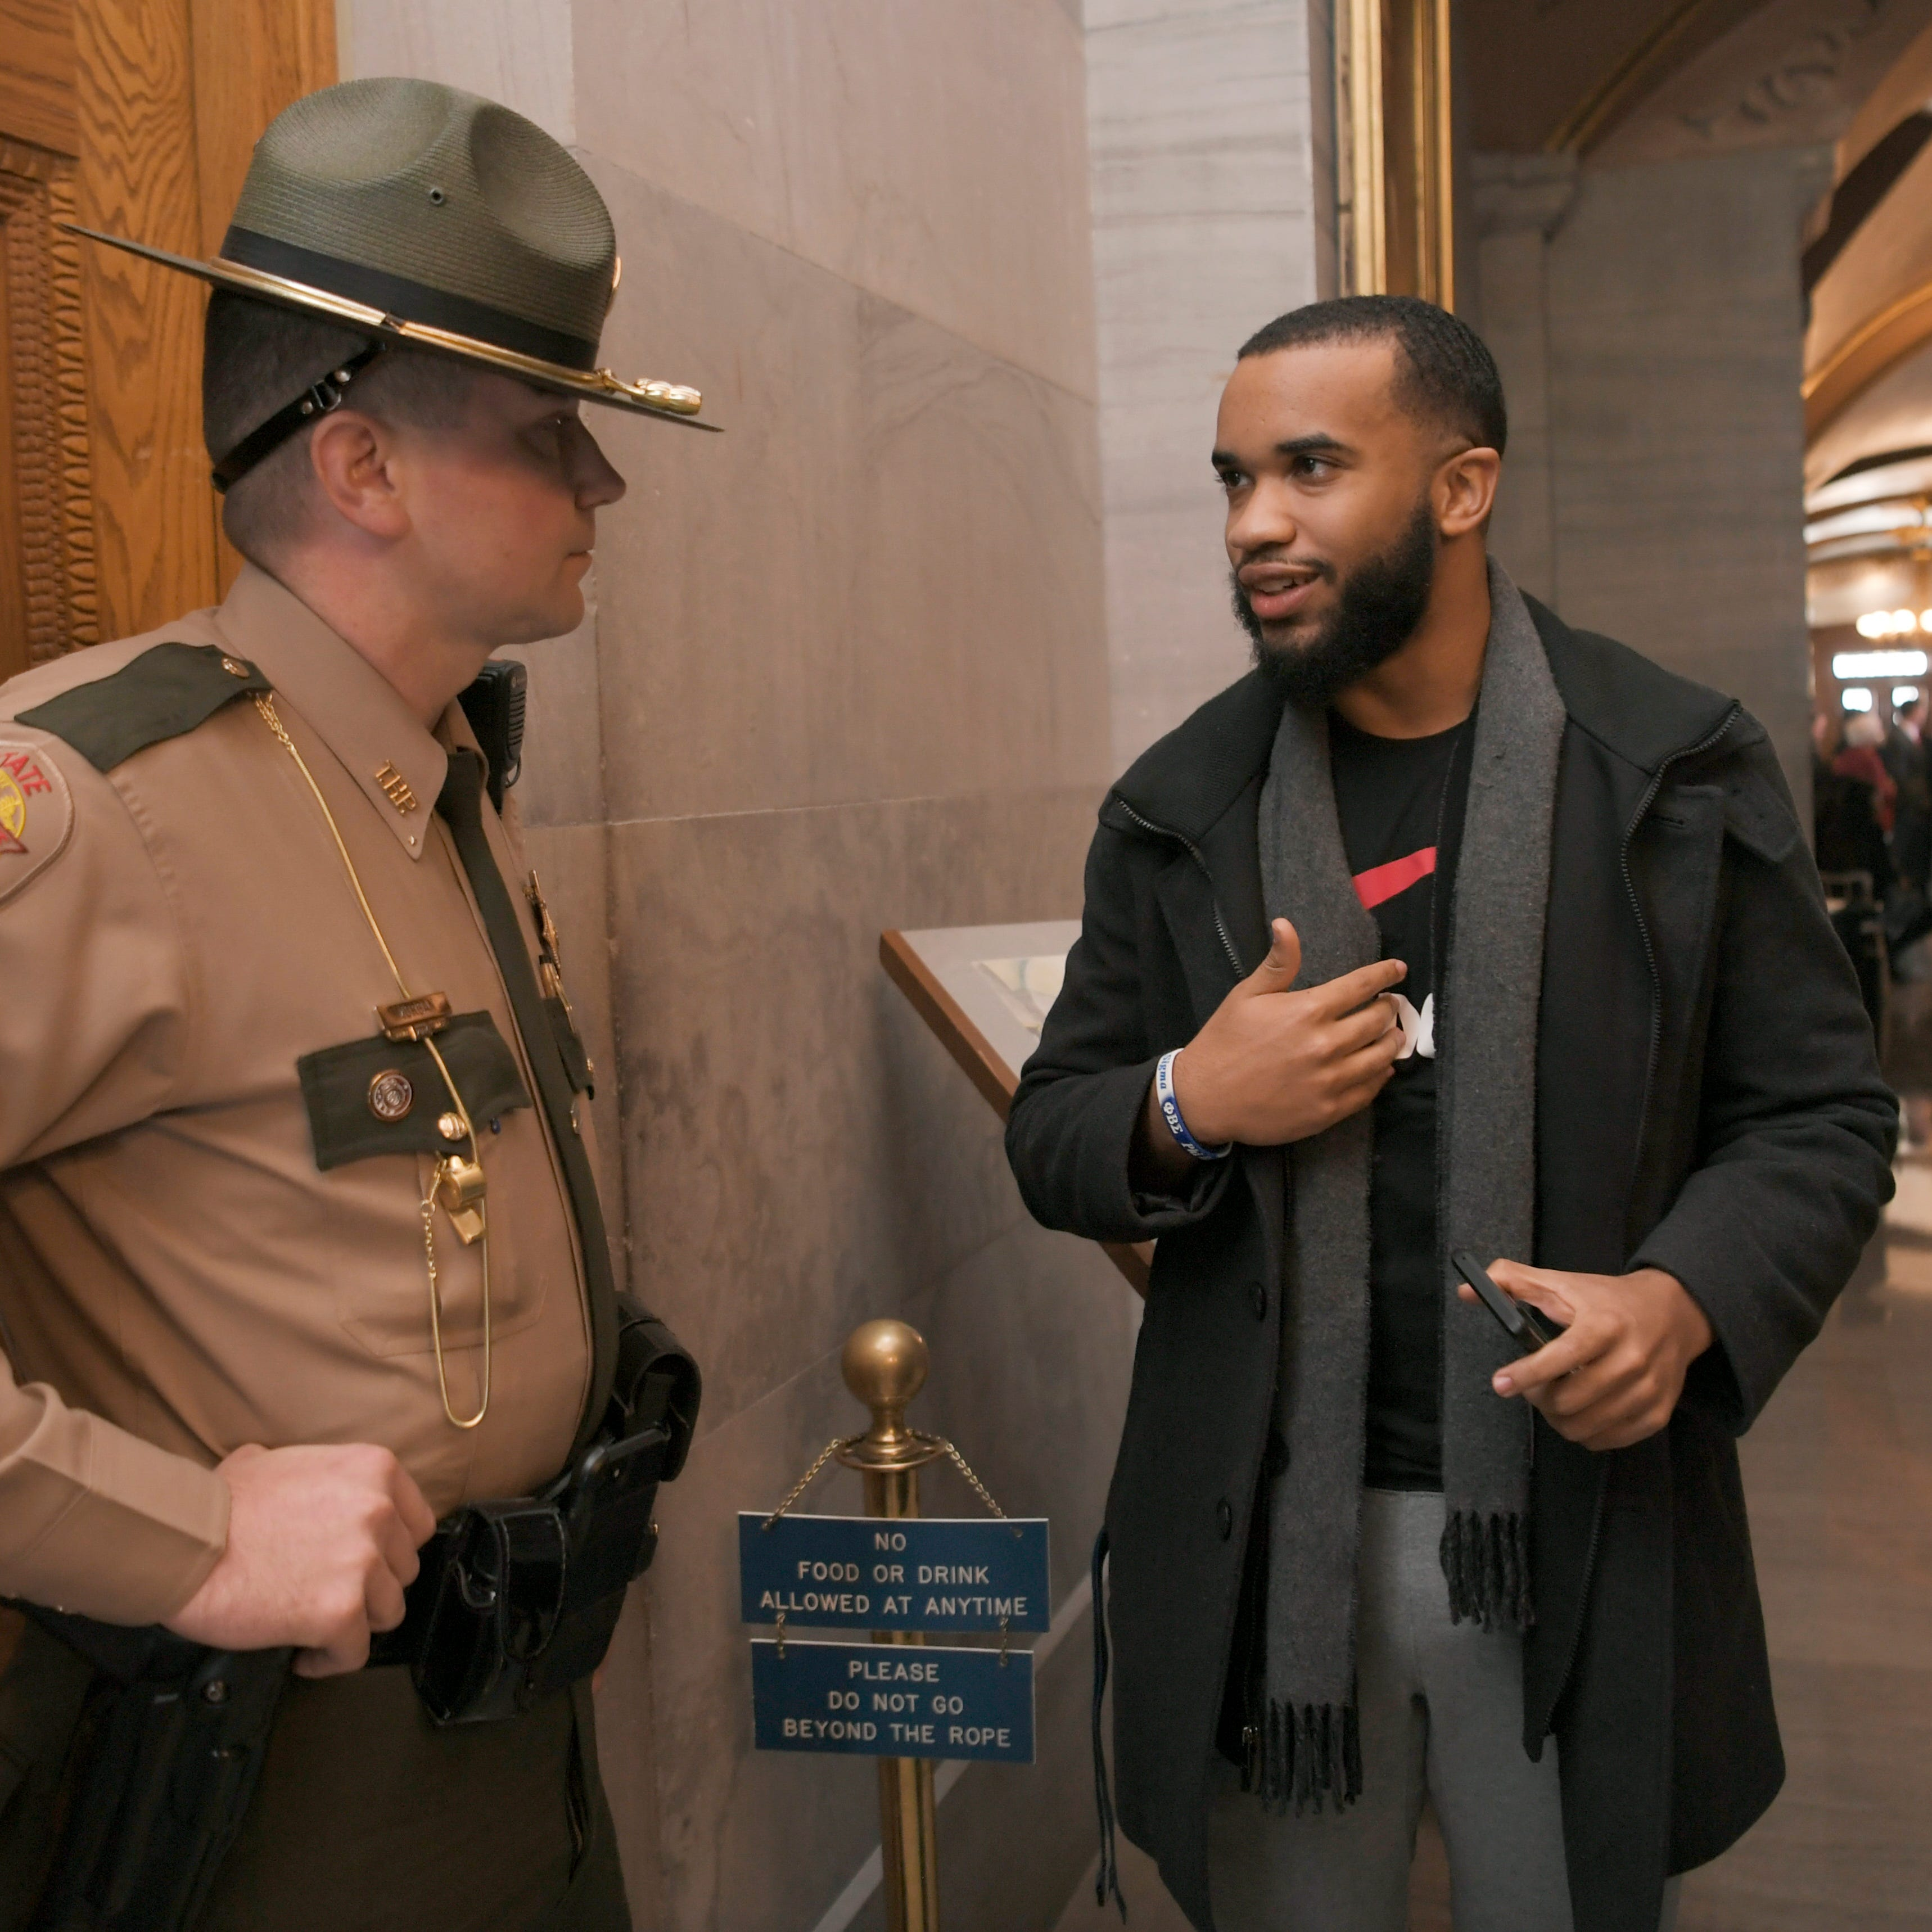 A Tennessee Highway Patrol officer speaks to a protester after a group confronted Speaker of the House Glen Casada before a press conference on healthcare Thursday, Feb. 21, 2019, at the Capitol in Nashville, Tenn.